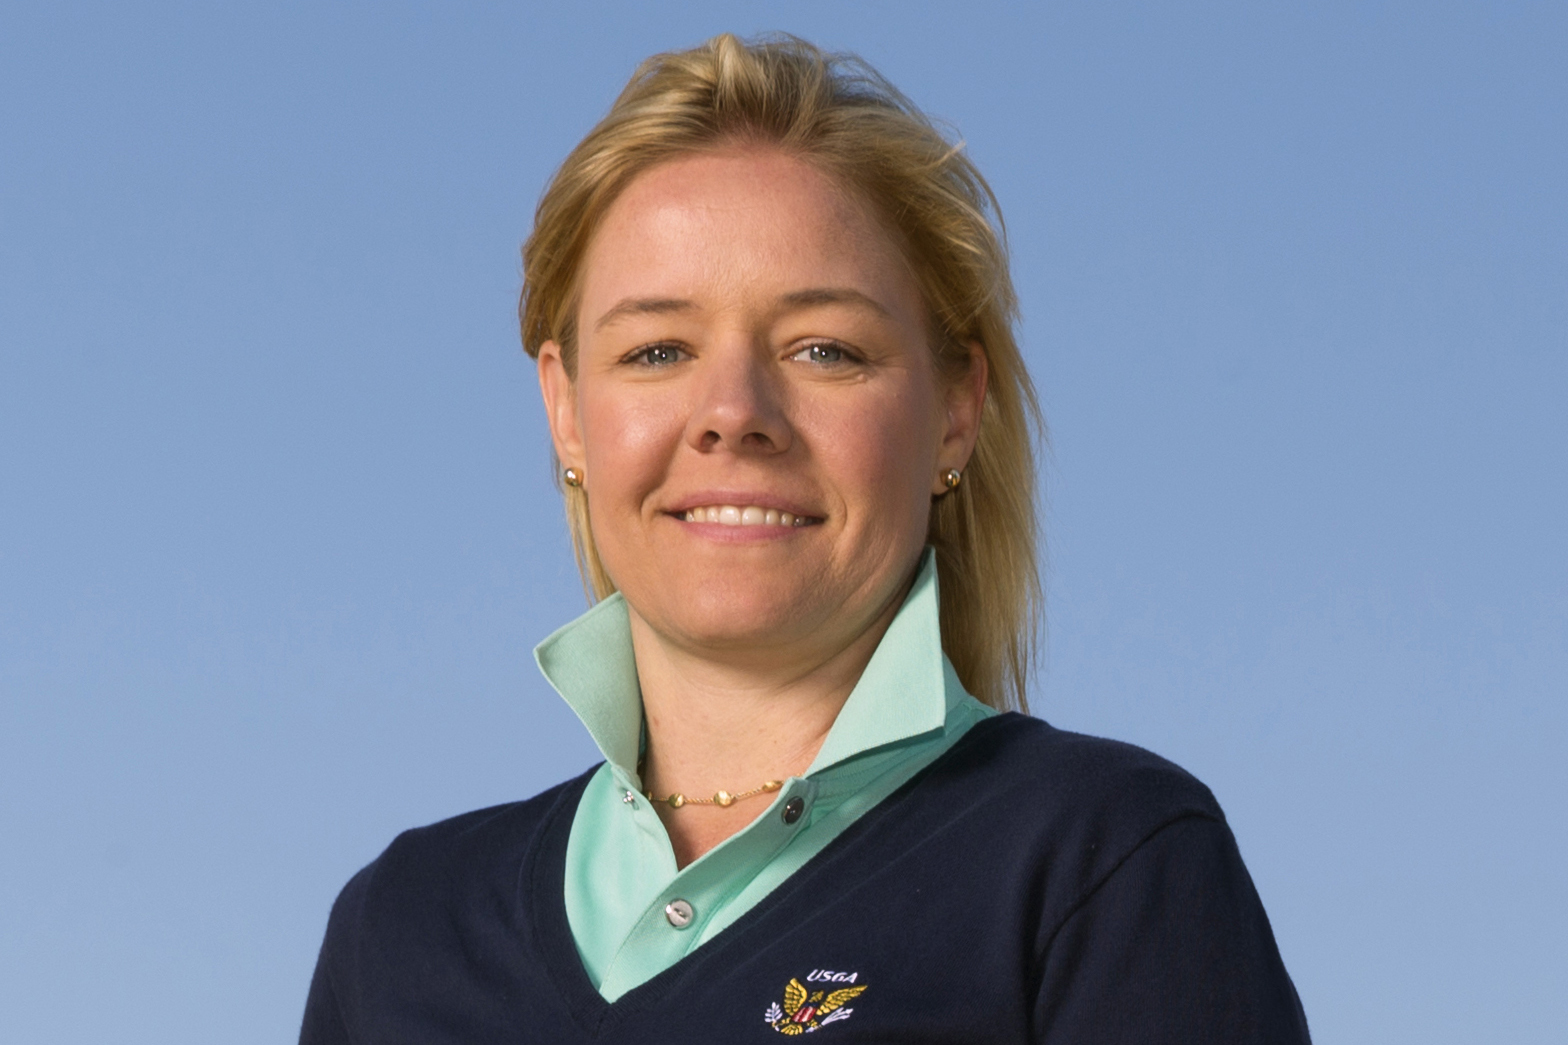 <p>The U.S. Olympic Committee has hired Sarah Hirshland as its CEO, placing the executive at the U.S. Golf Association in charge of stabilizing an organization that has been hammered by sex-abuse scandals spanning several Olympic sports.</p>